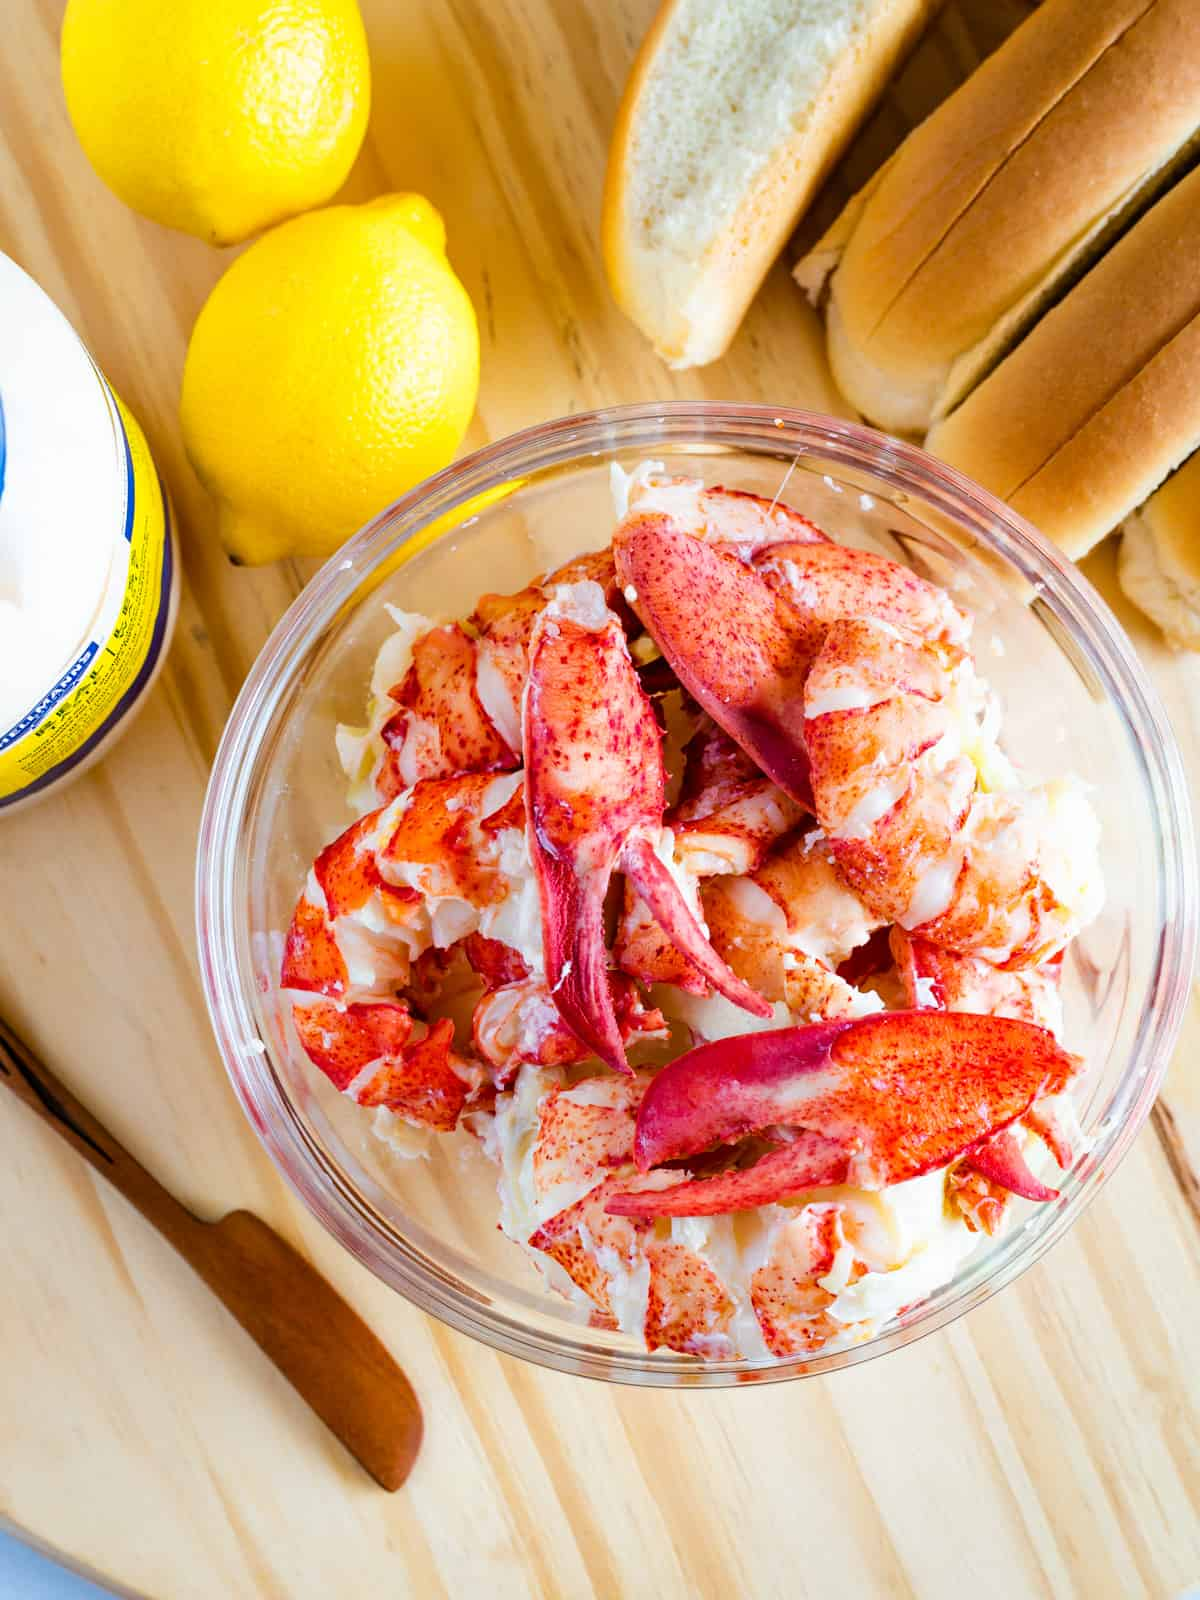 Bowl of lobster meat. Lemons. Hot dog buns and mayo.